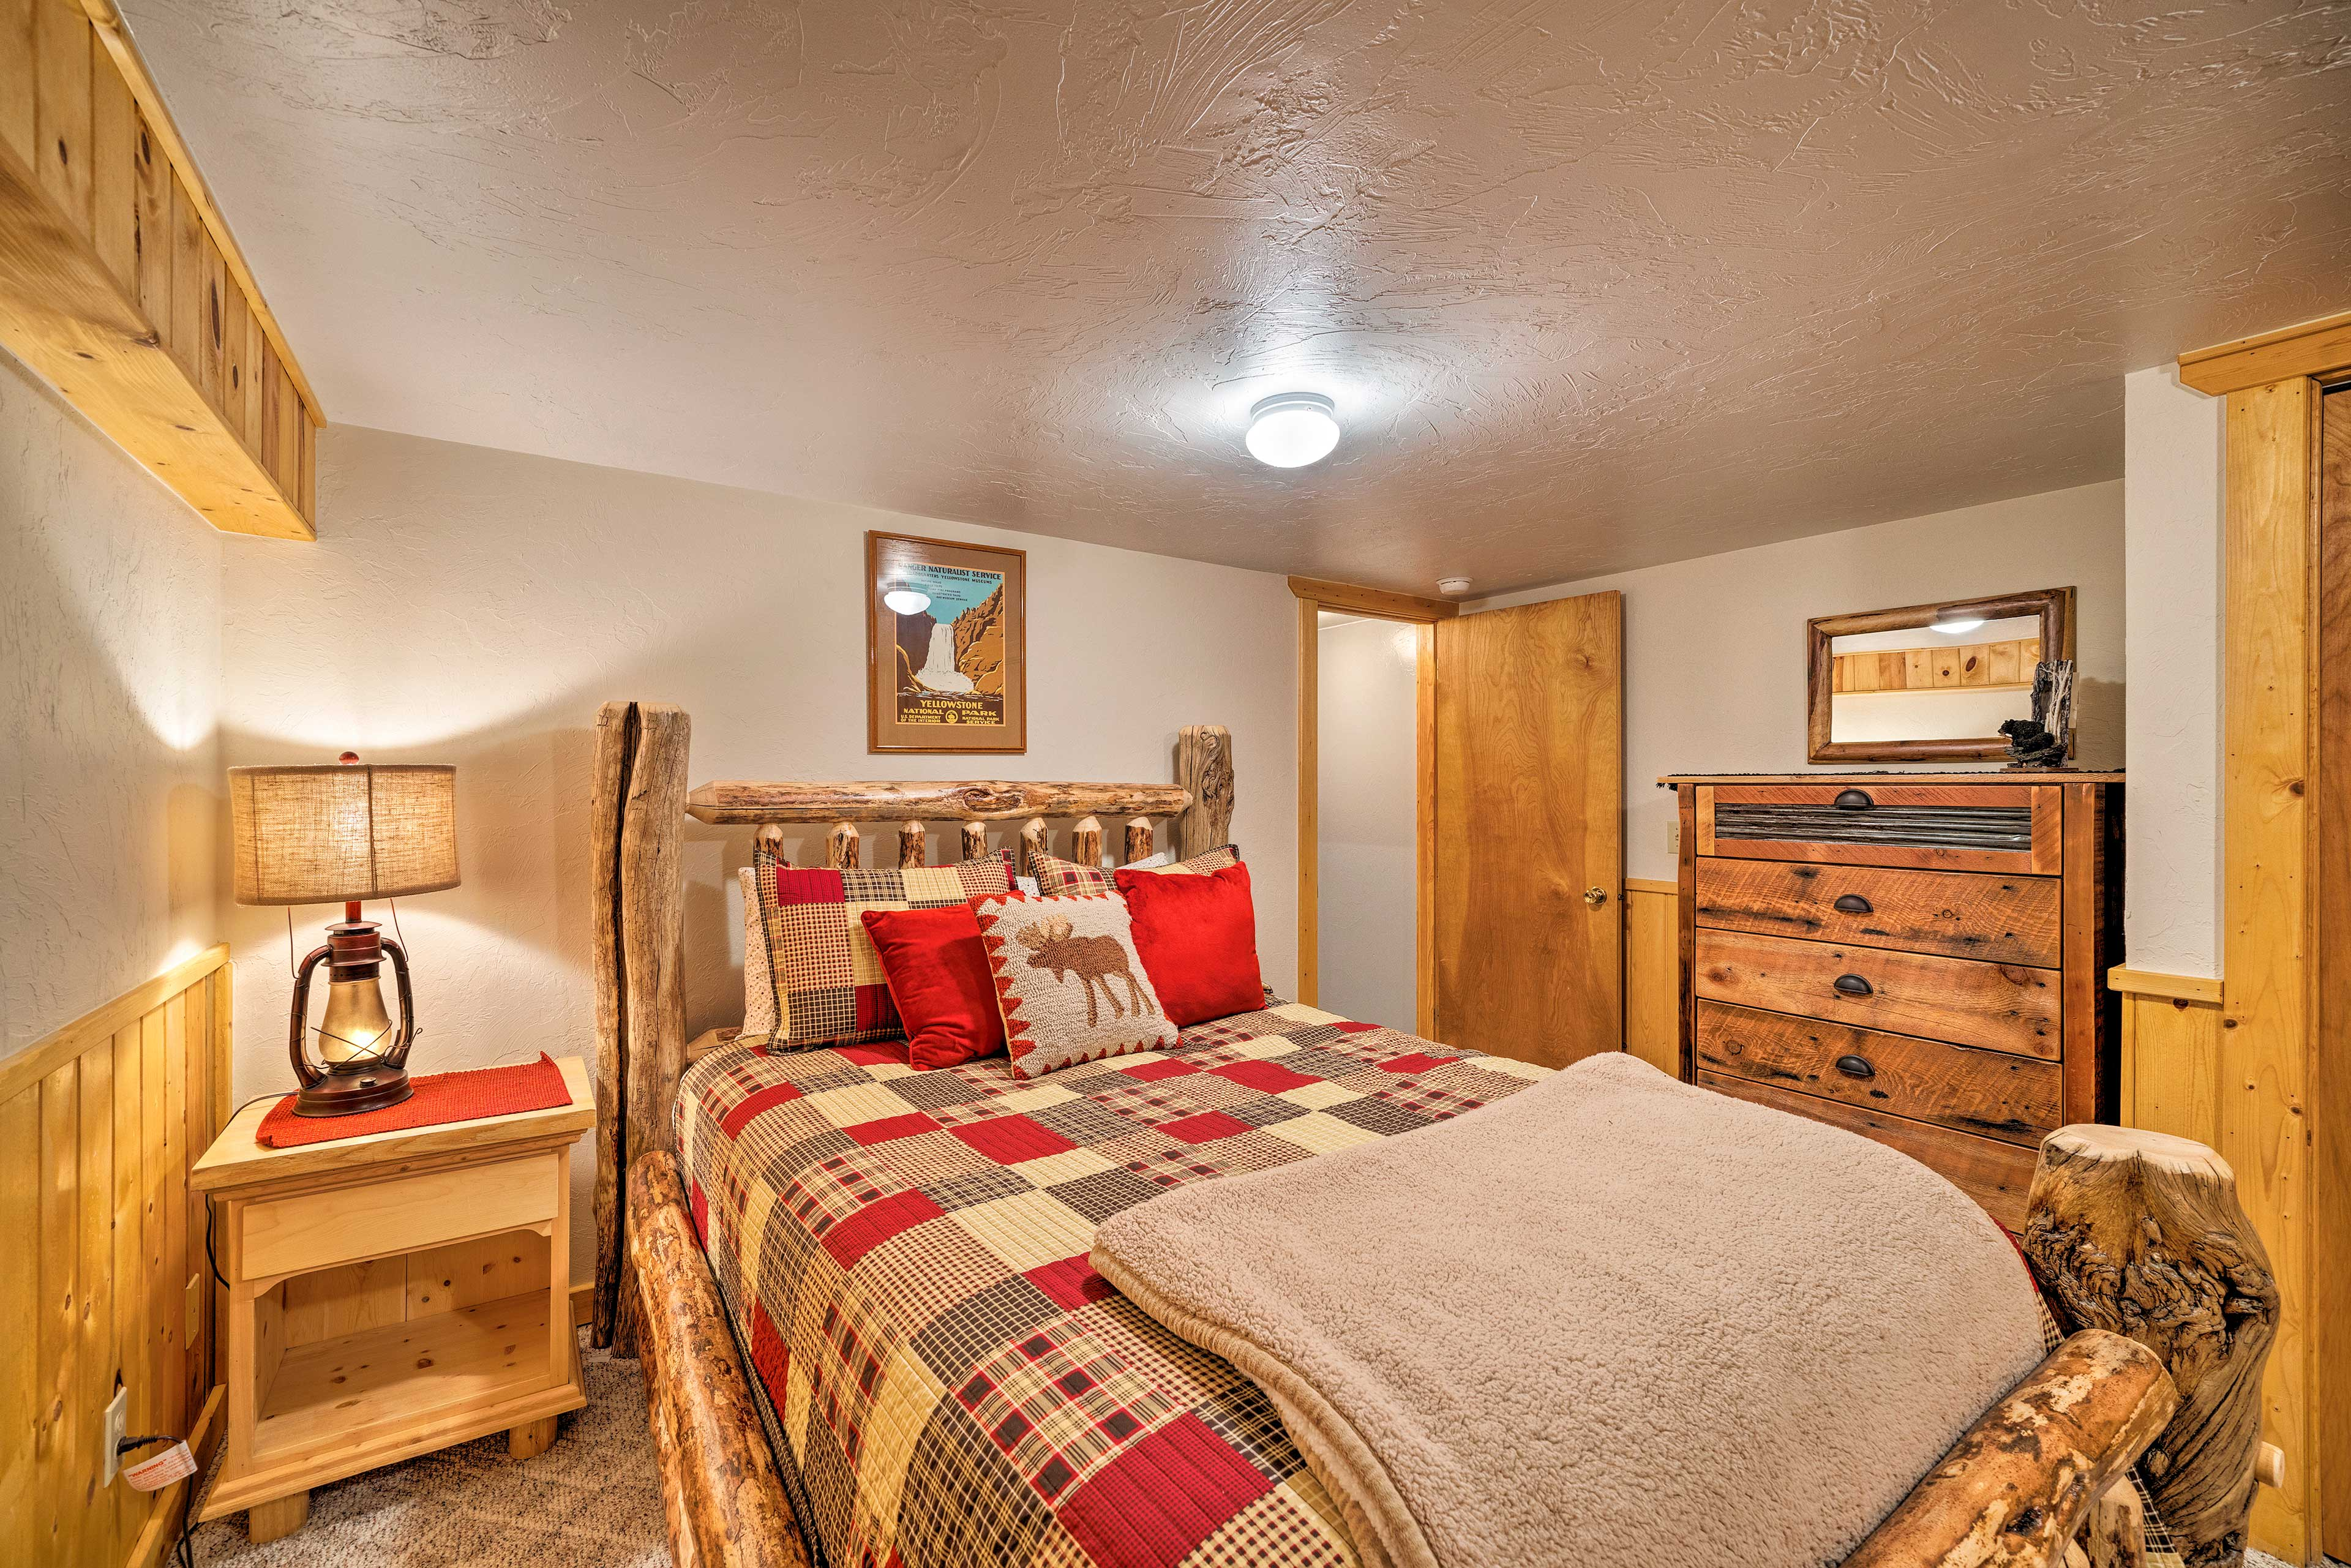 The room includes a queen bed.